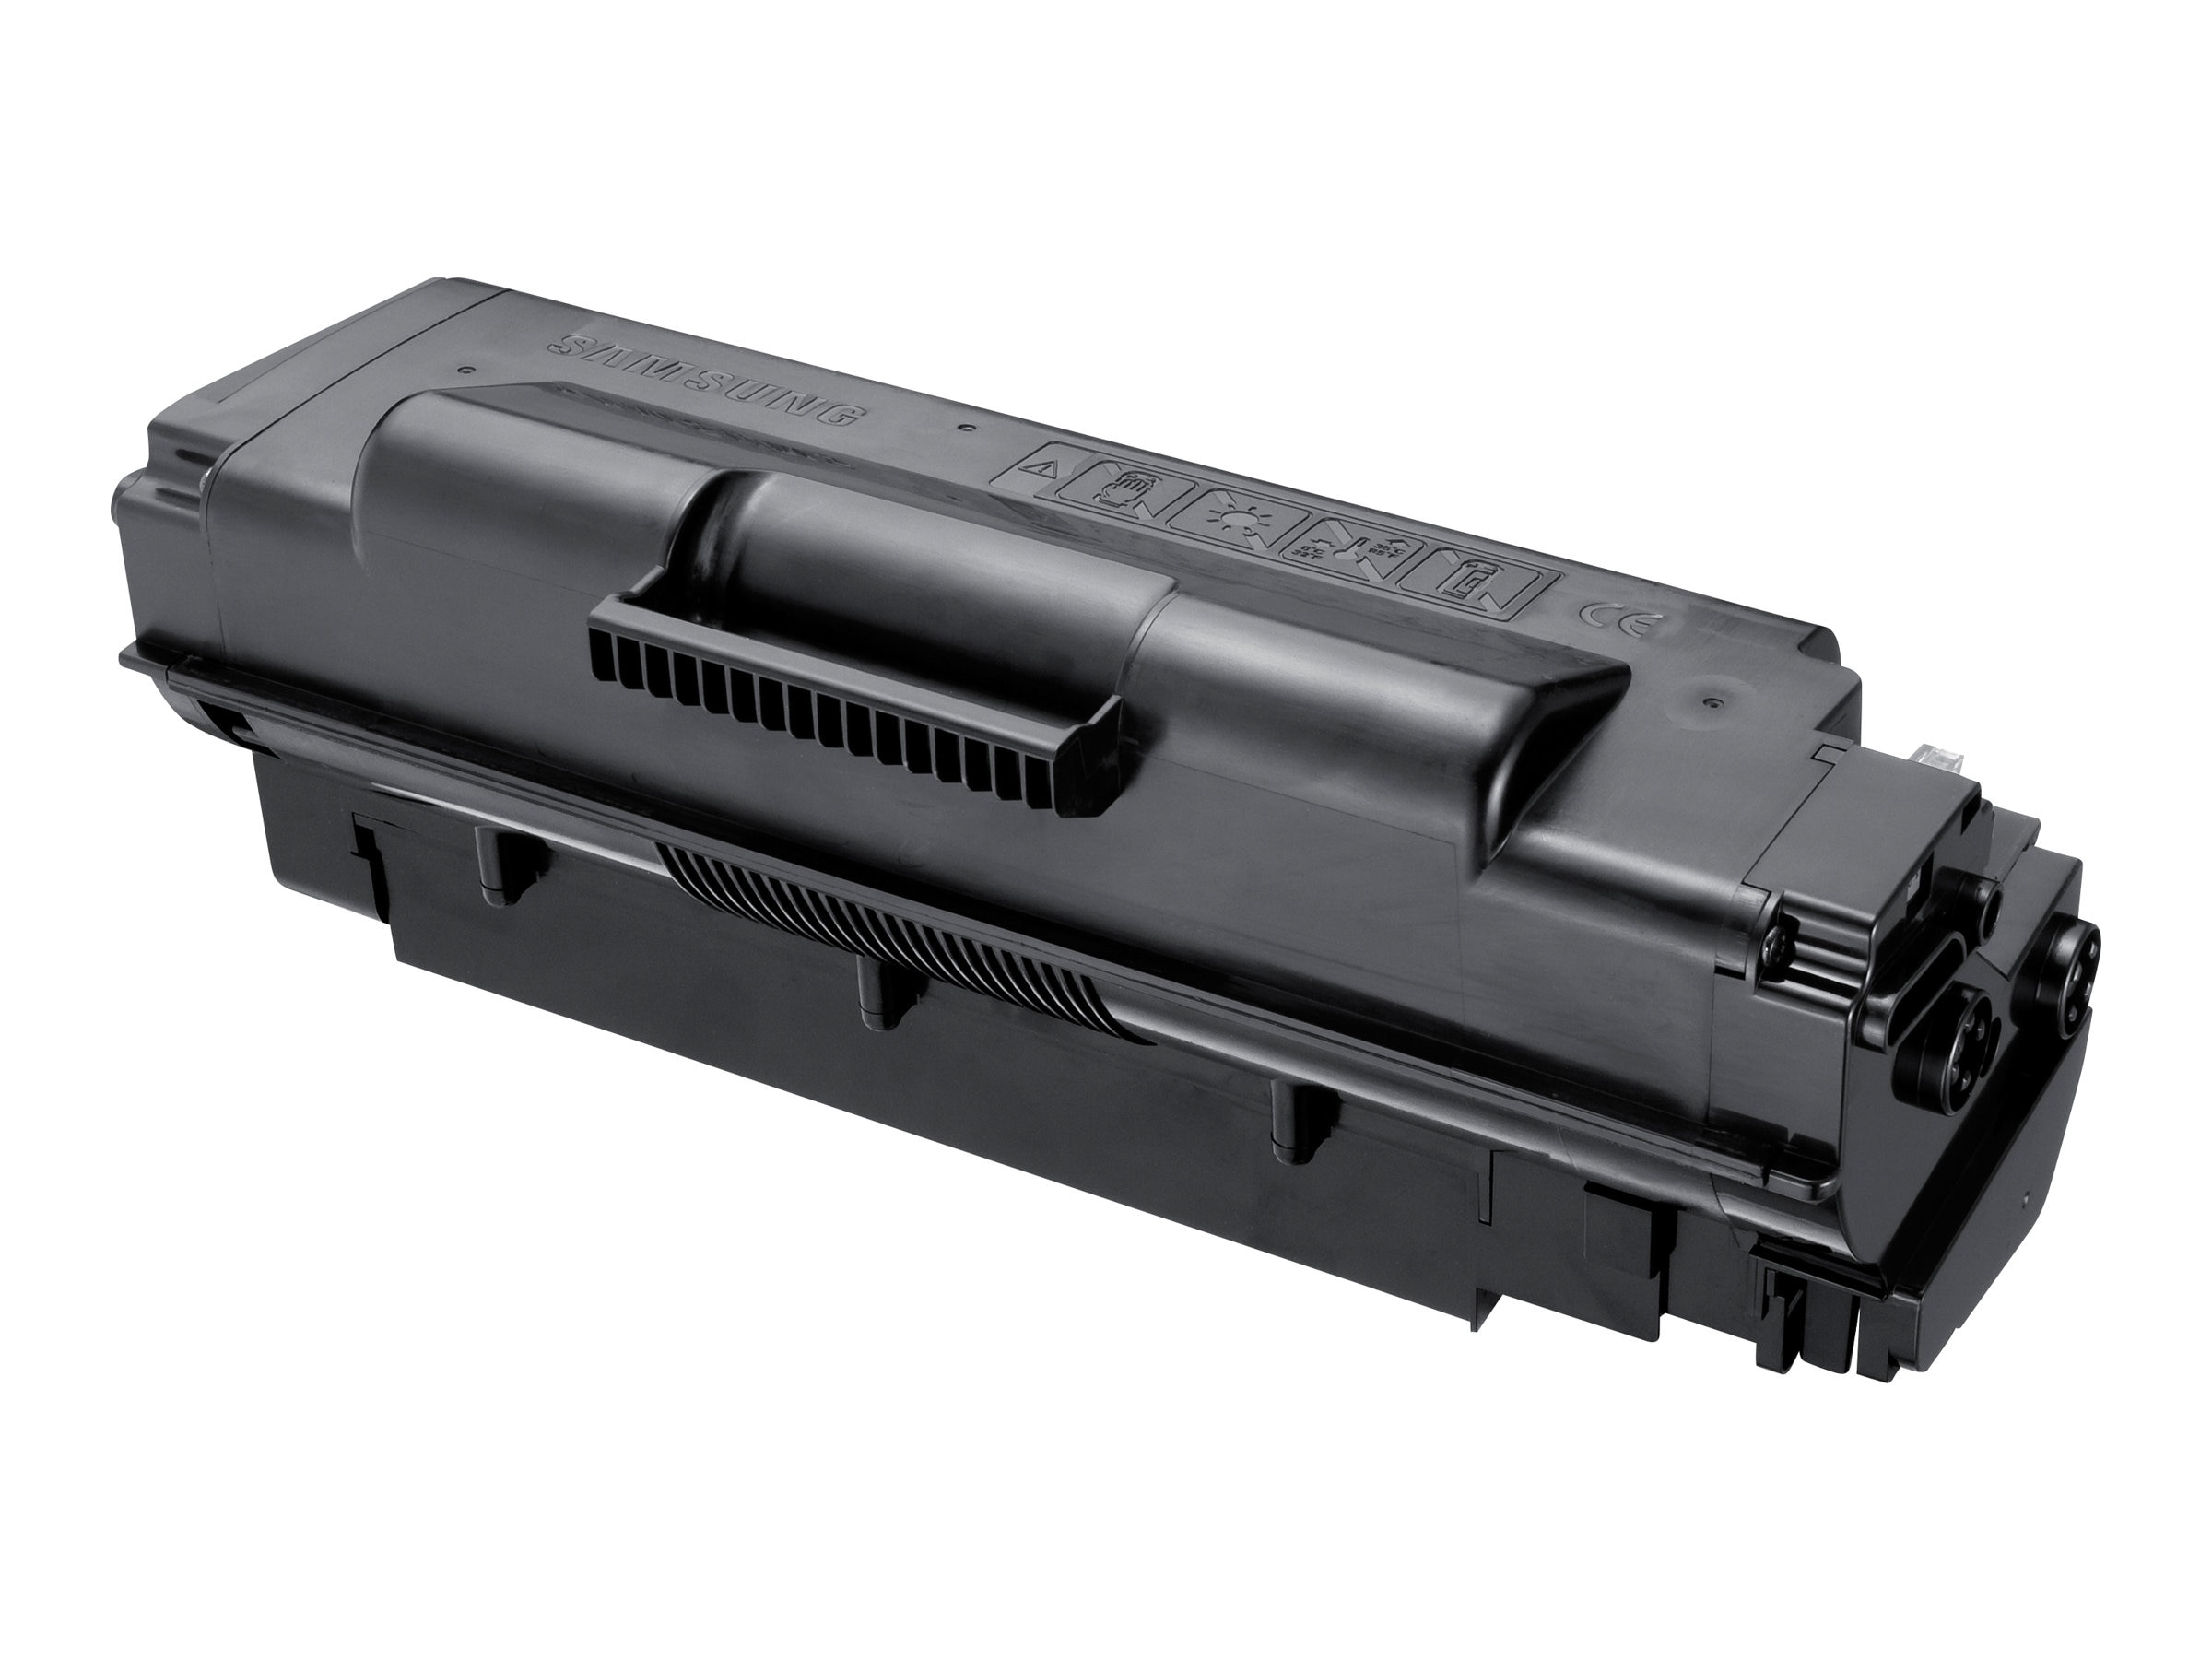 Samsung Black Extra High Yield Toner Cartridge for ML-4512ND, ML-5012ND & ML-5017ND